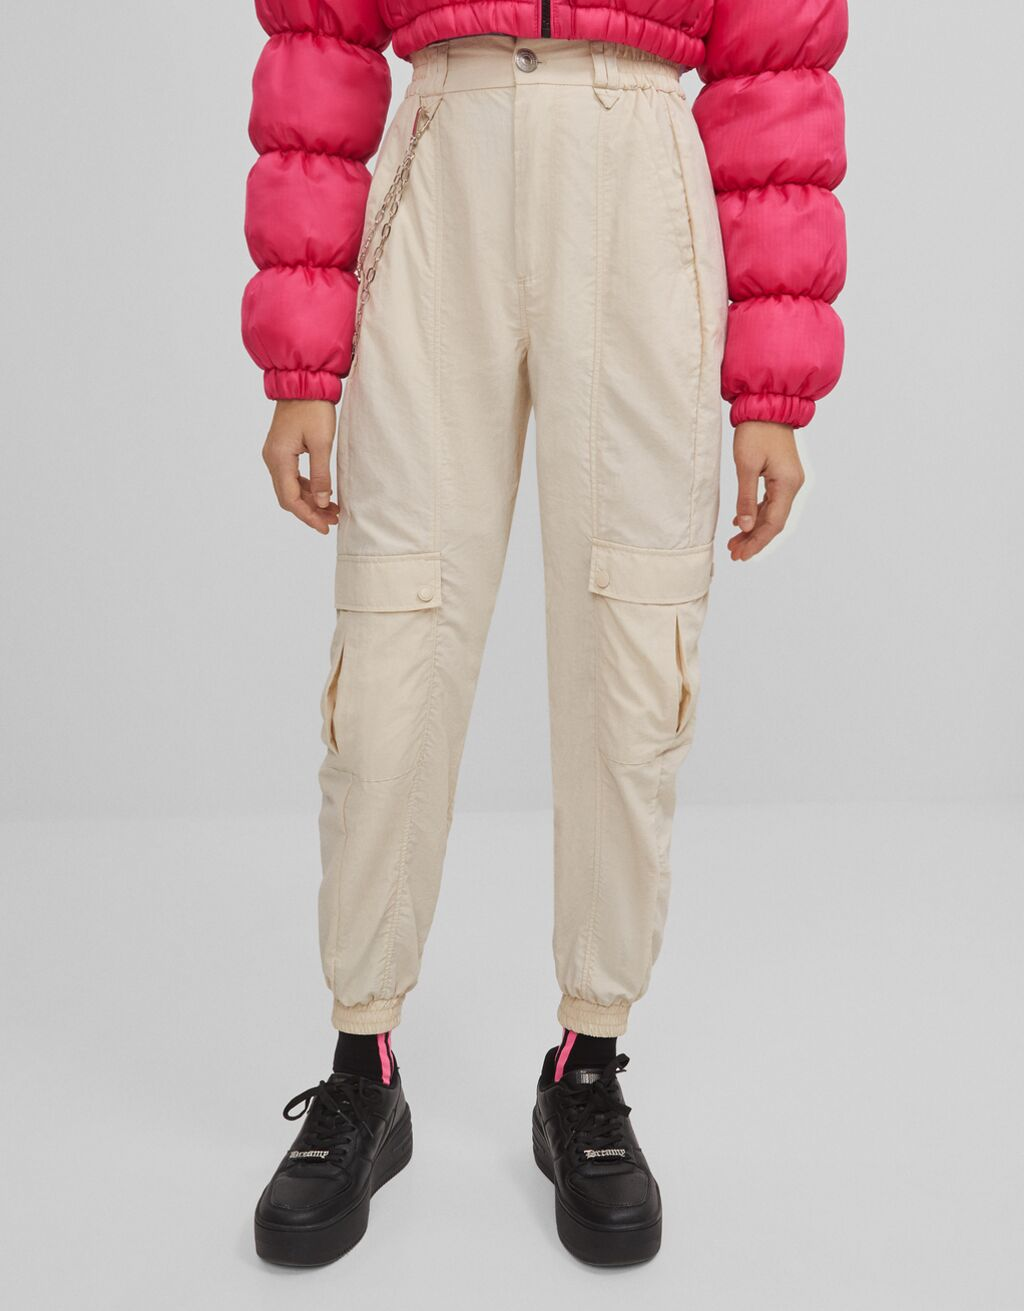 Jogging trousers with a chain